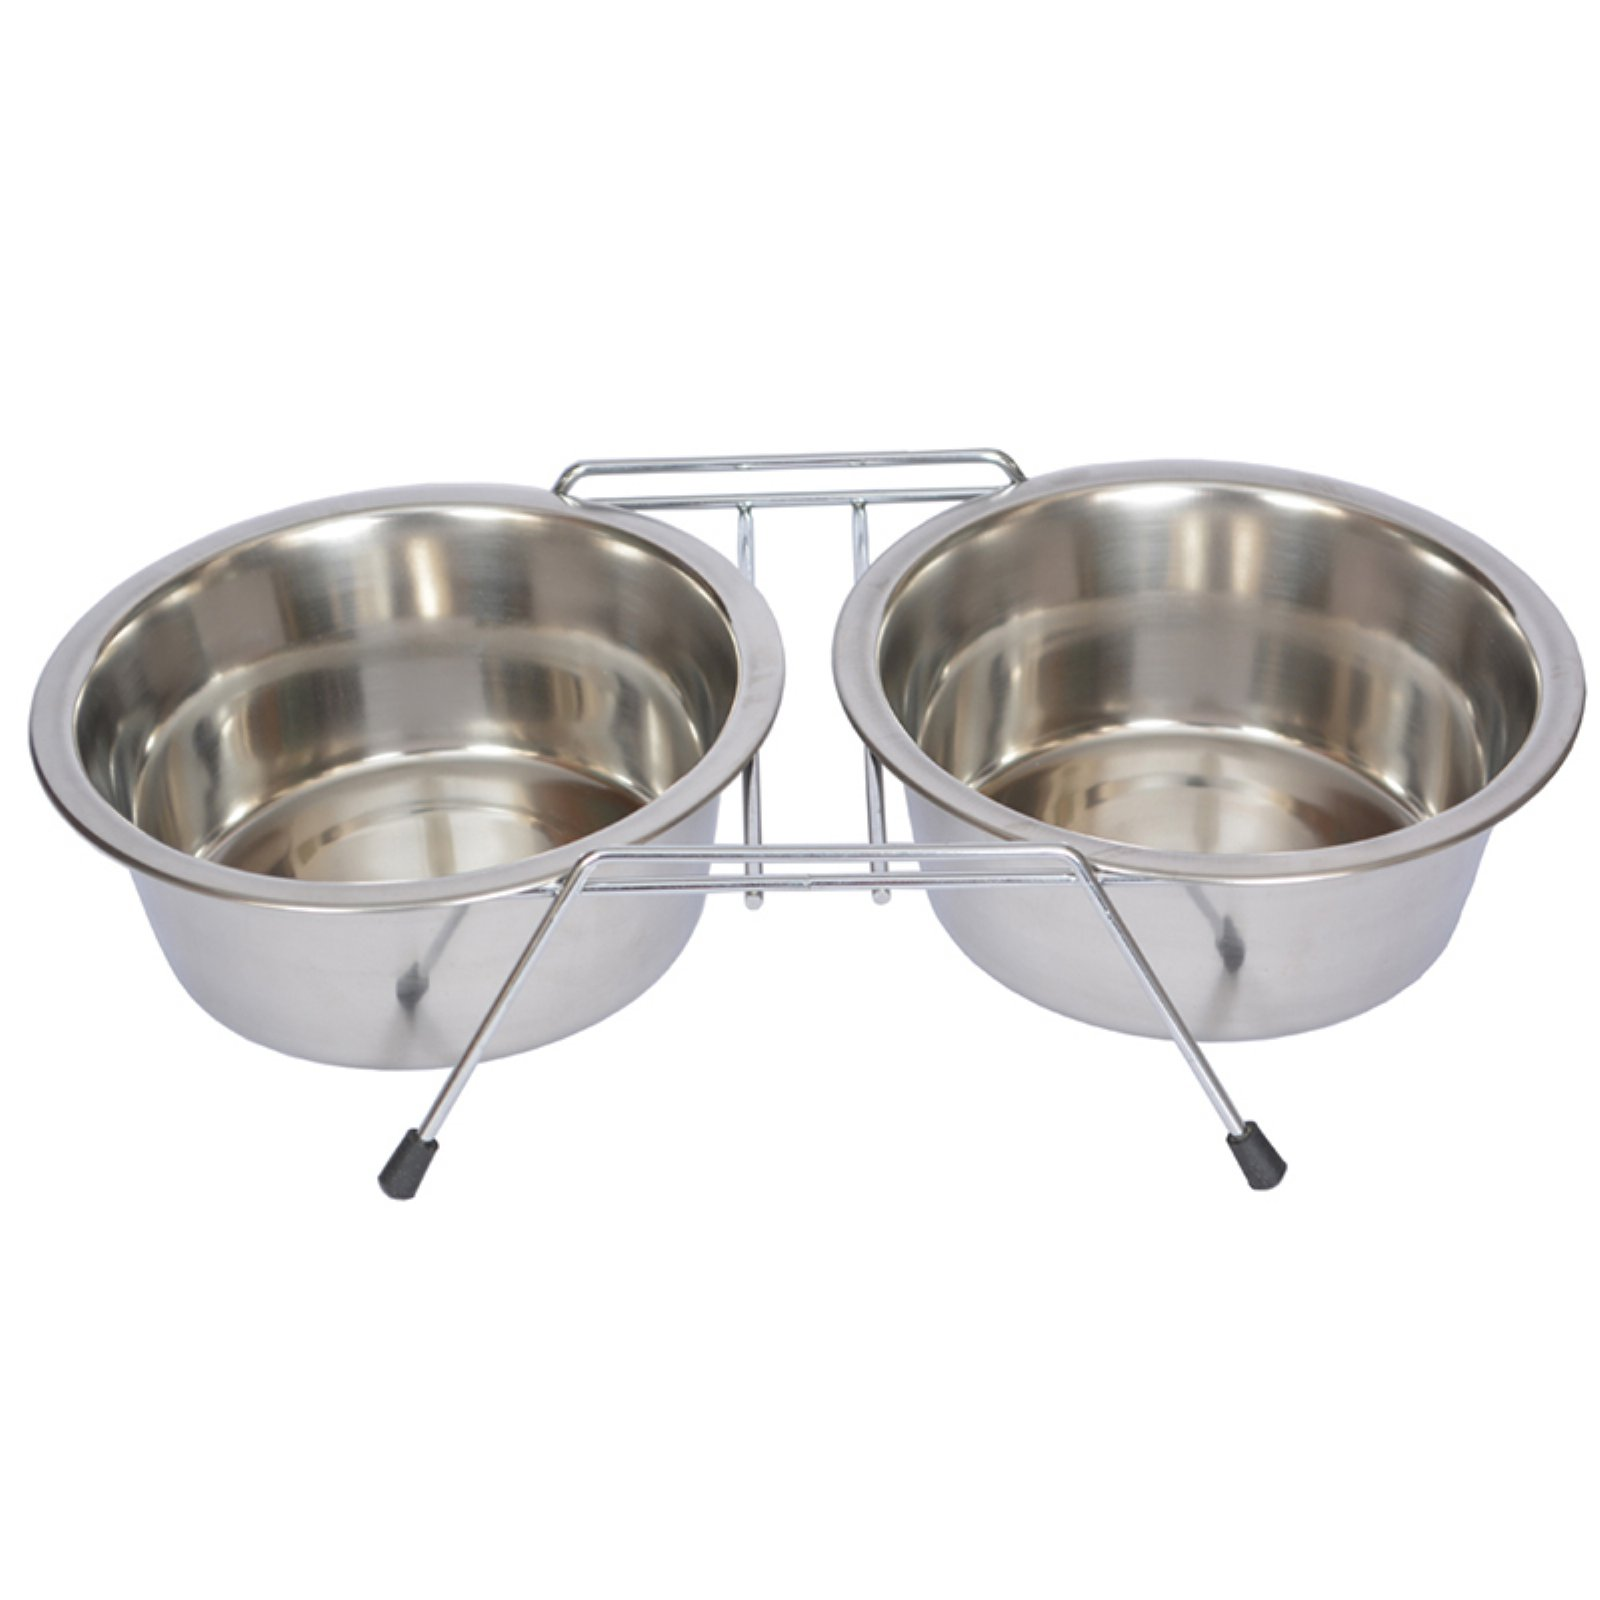 Iconic Pet Stainless Steel Double Diner with Wire Stand For Dog or Cat, 2 Qt, 64 Oz, 8 Cup